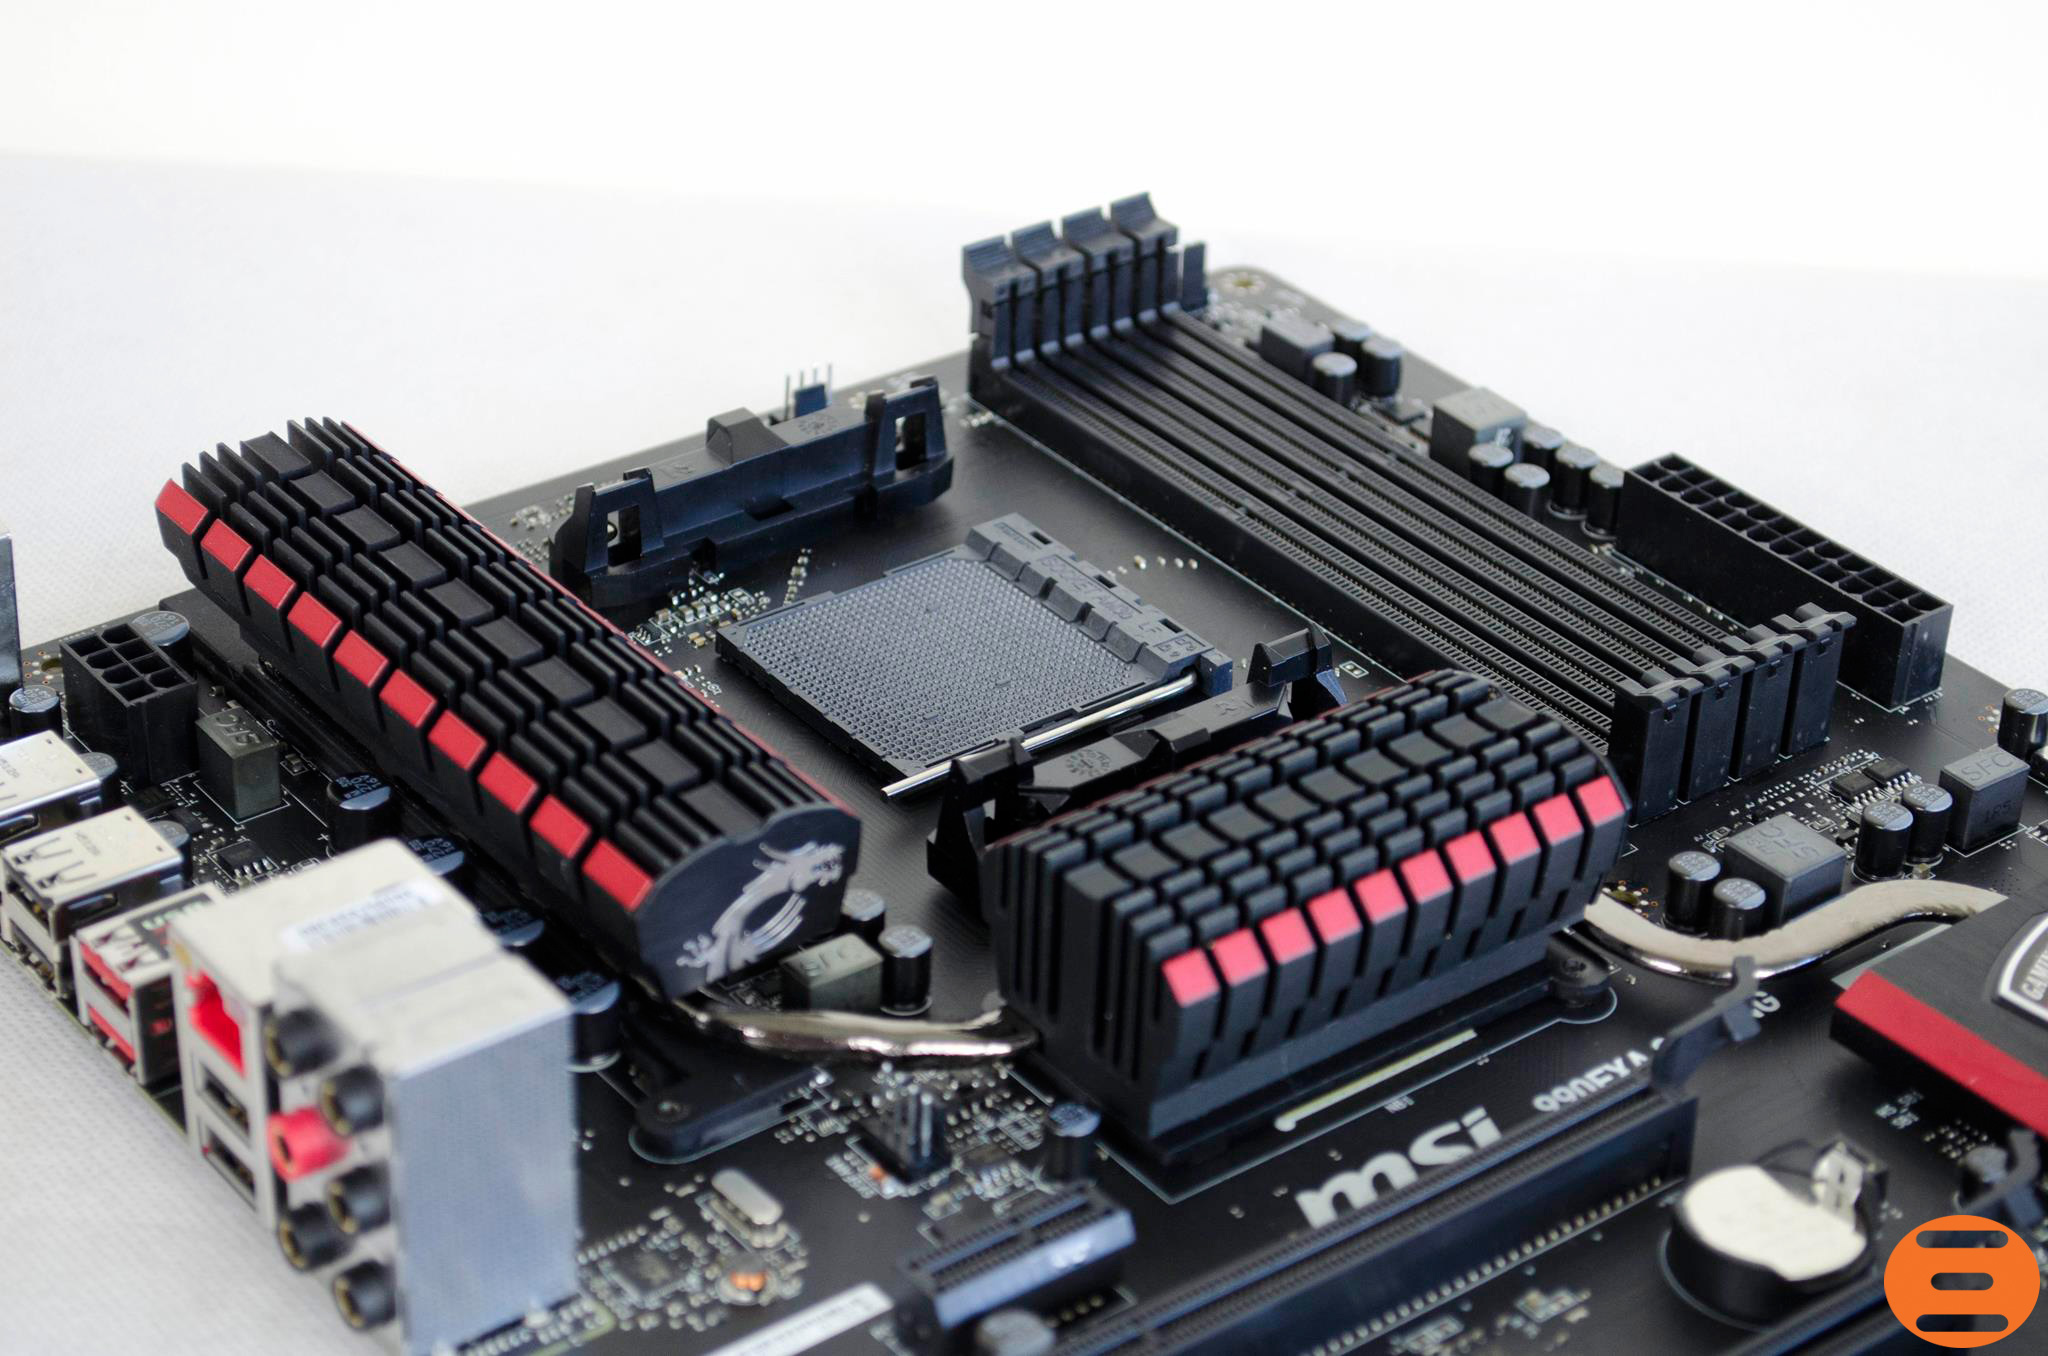 MSI 970 Gaming Motherboard Unboxing - Review - YouTube